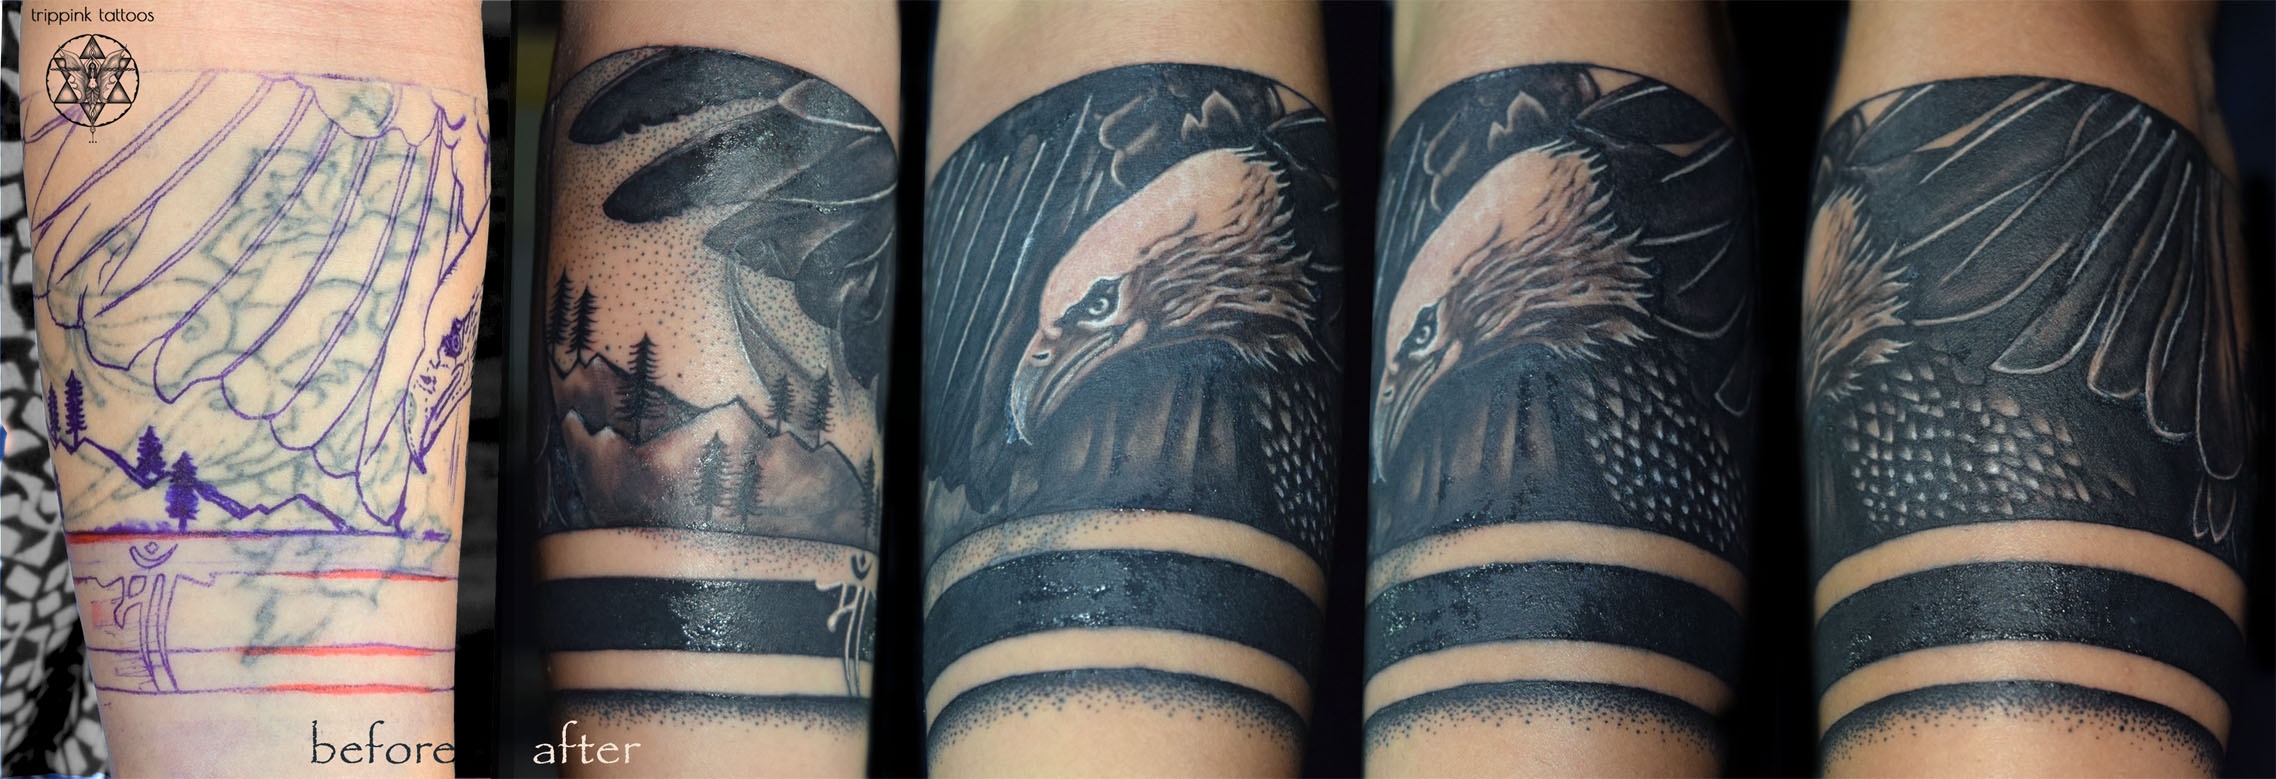 Eagle cover up tattoo from Trippink